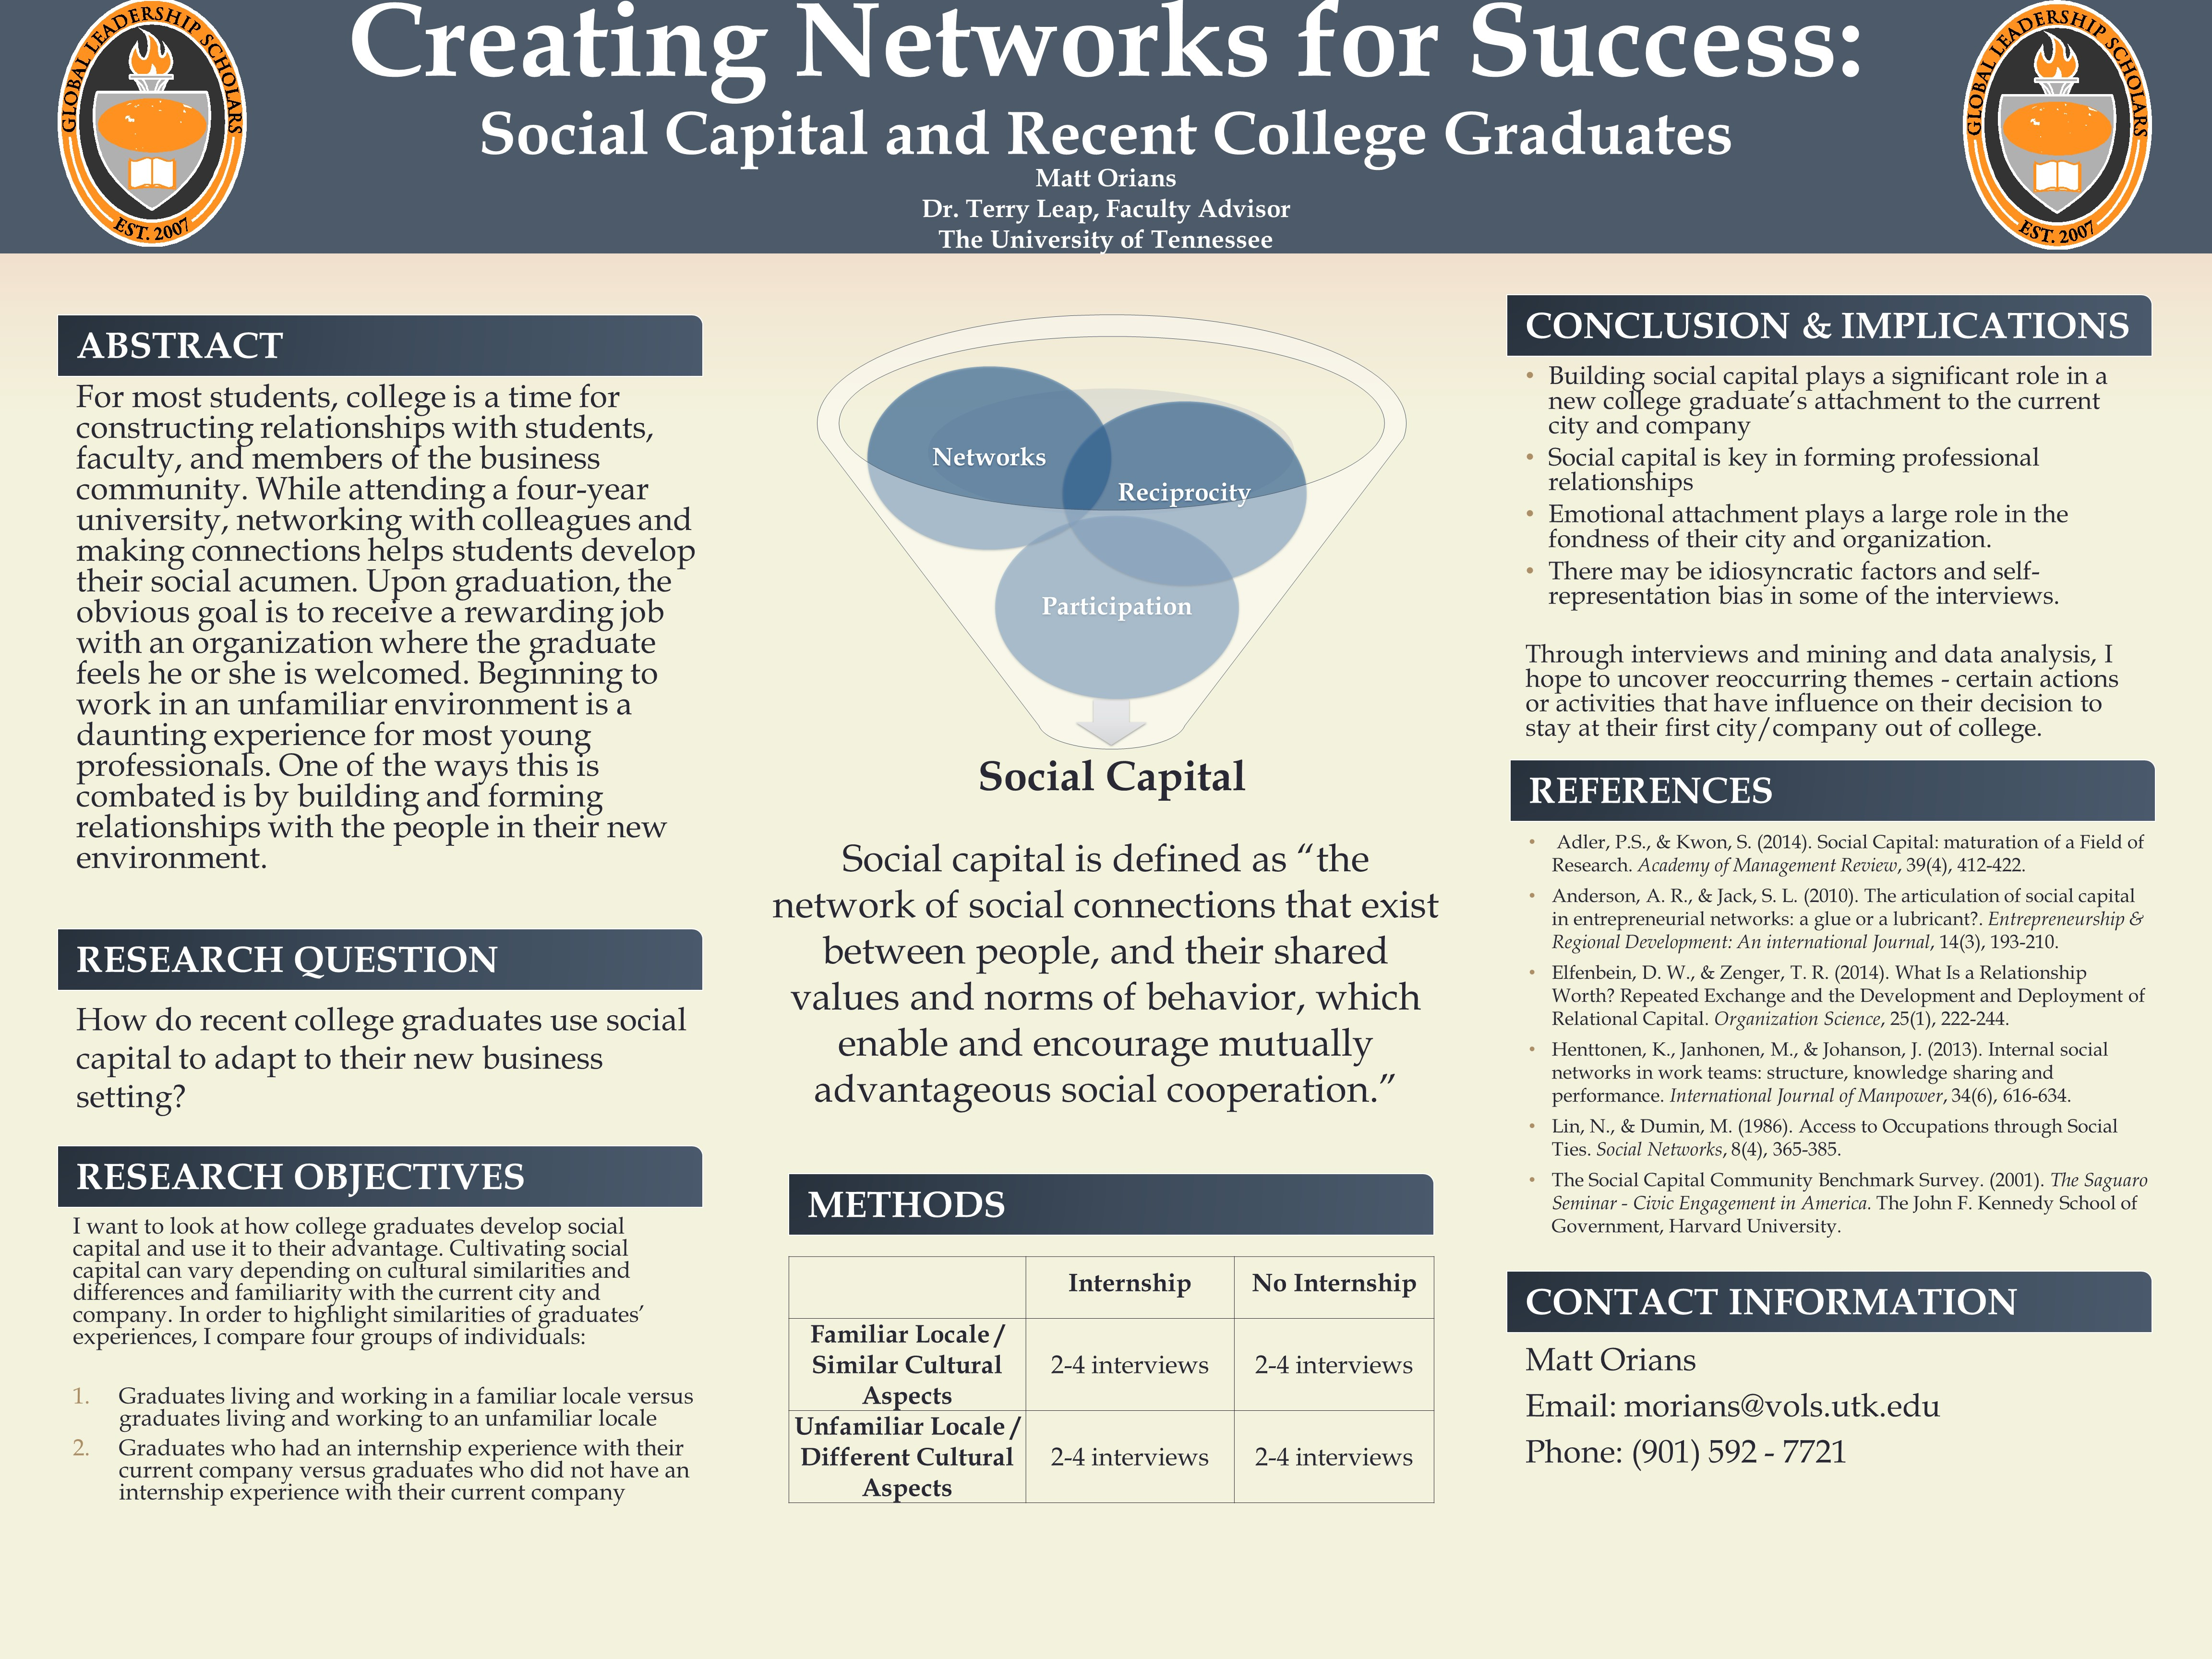 Creating Networks for Success: Social Capital and Recent College Graduates